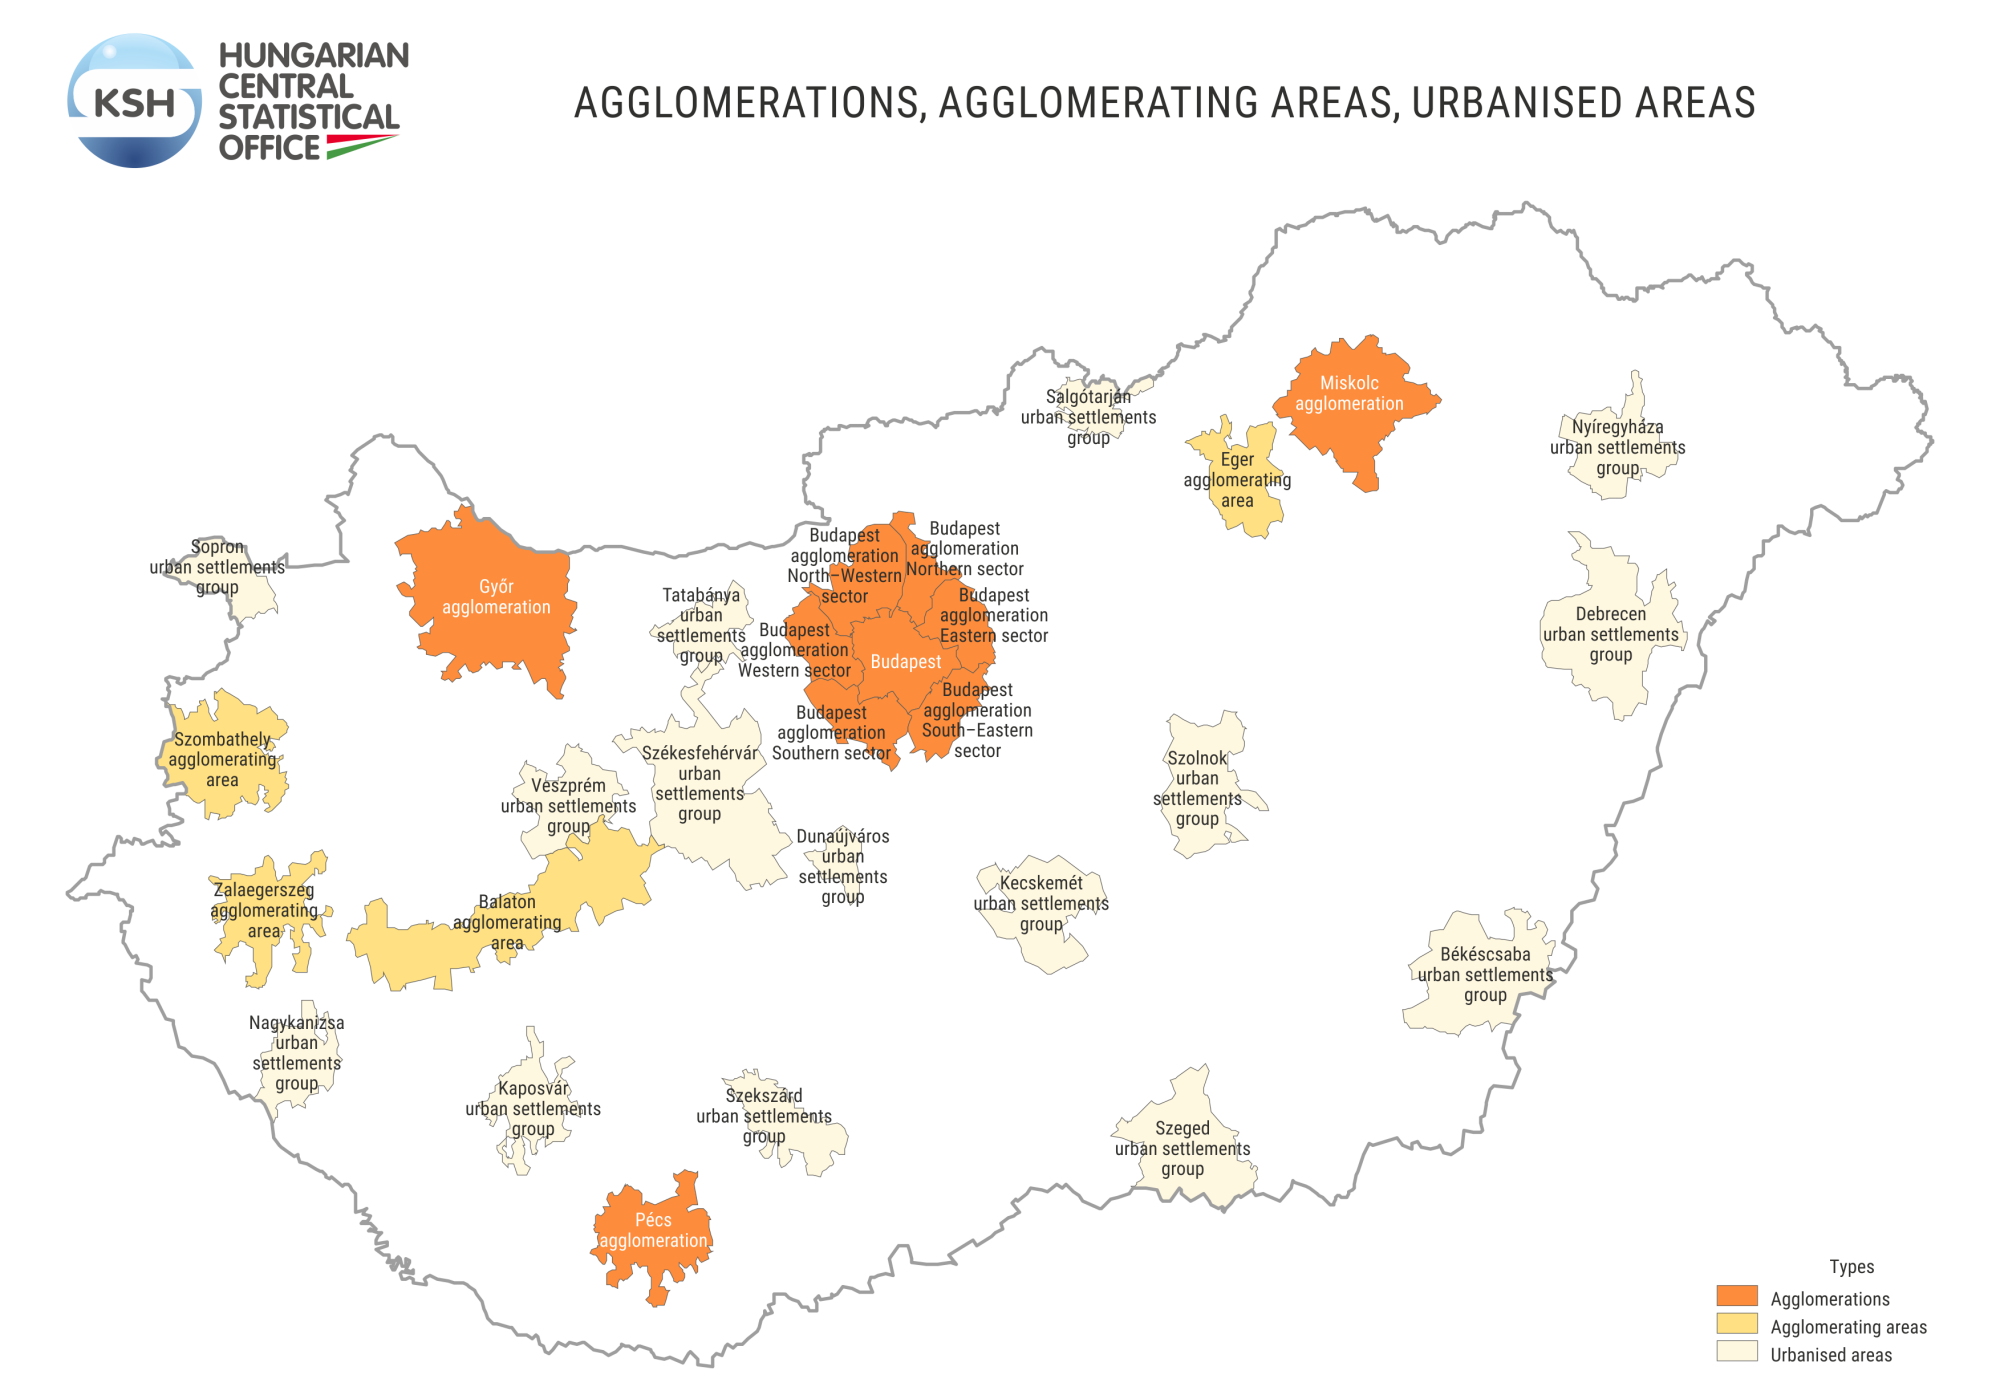 Settlement groups, agglomerations, agglomerating areas